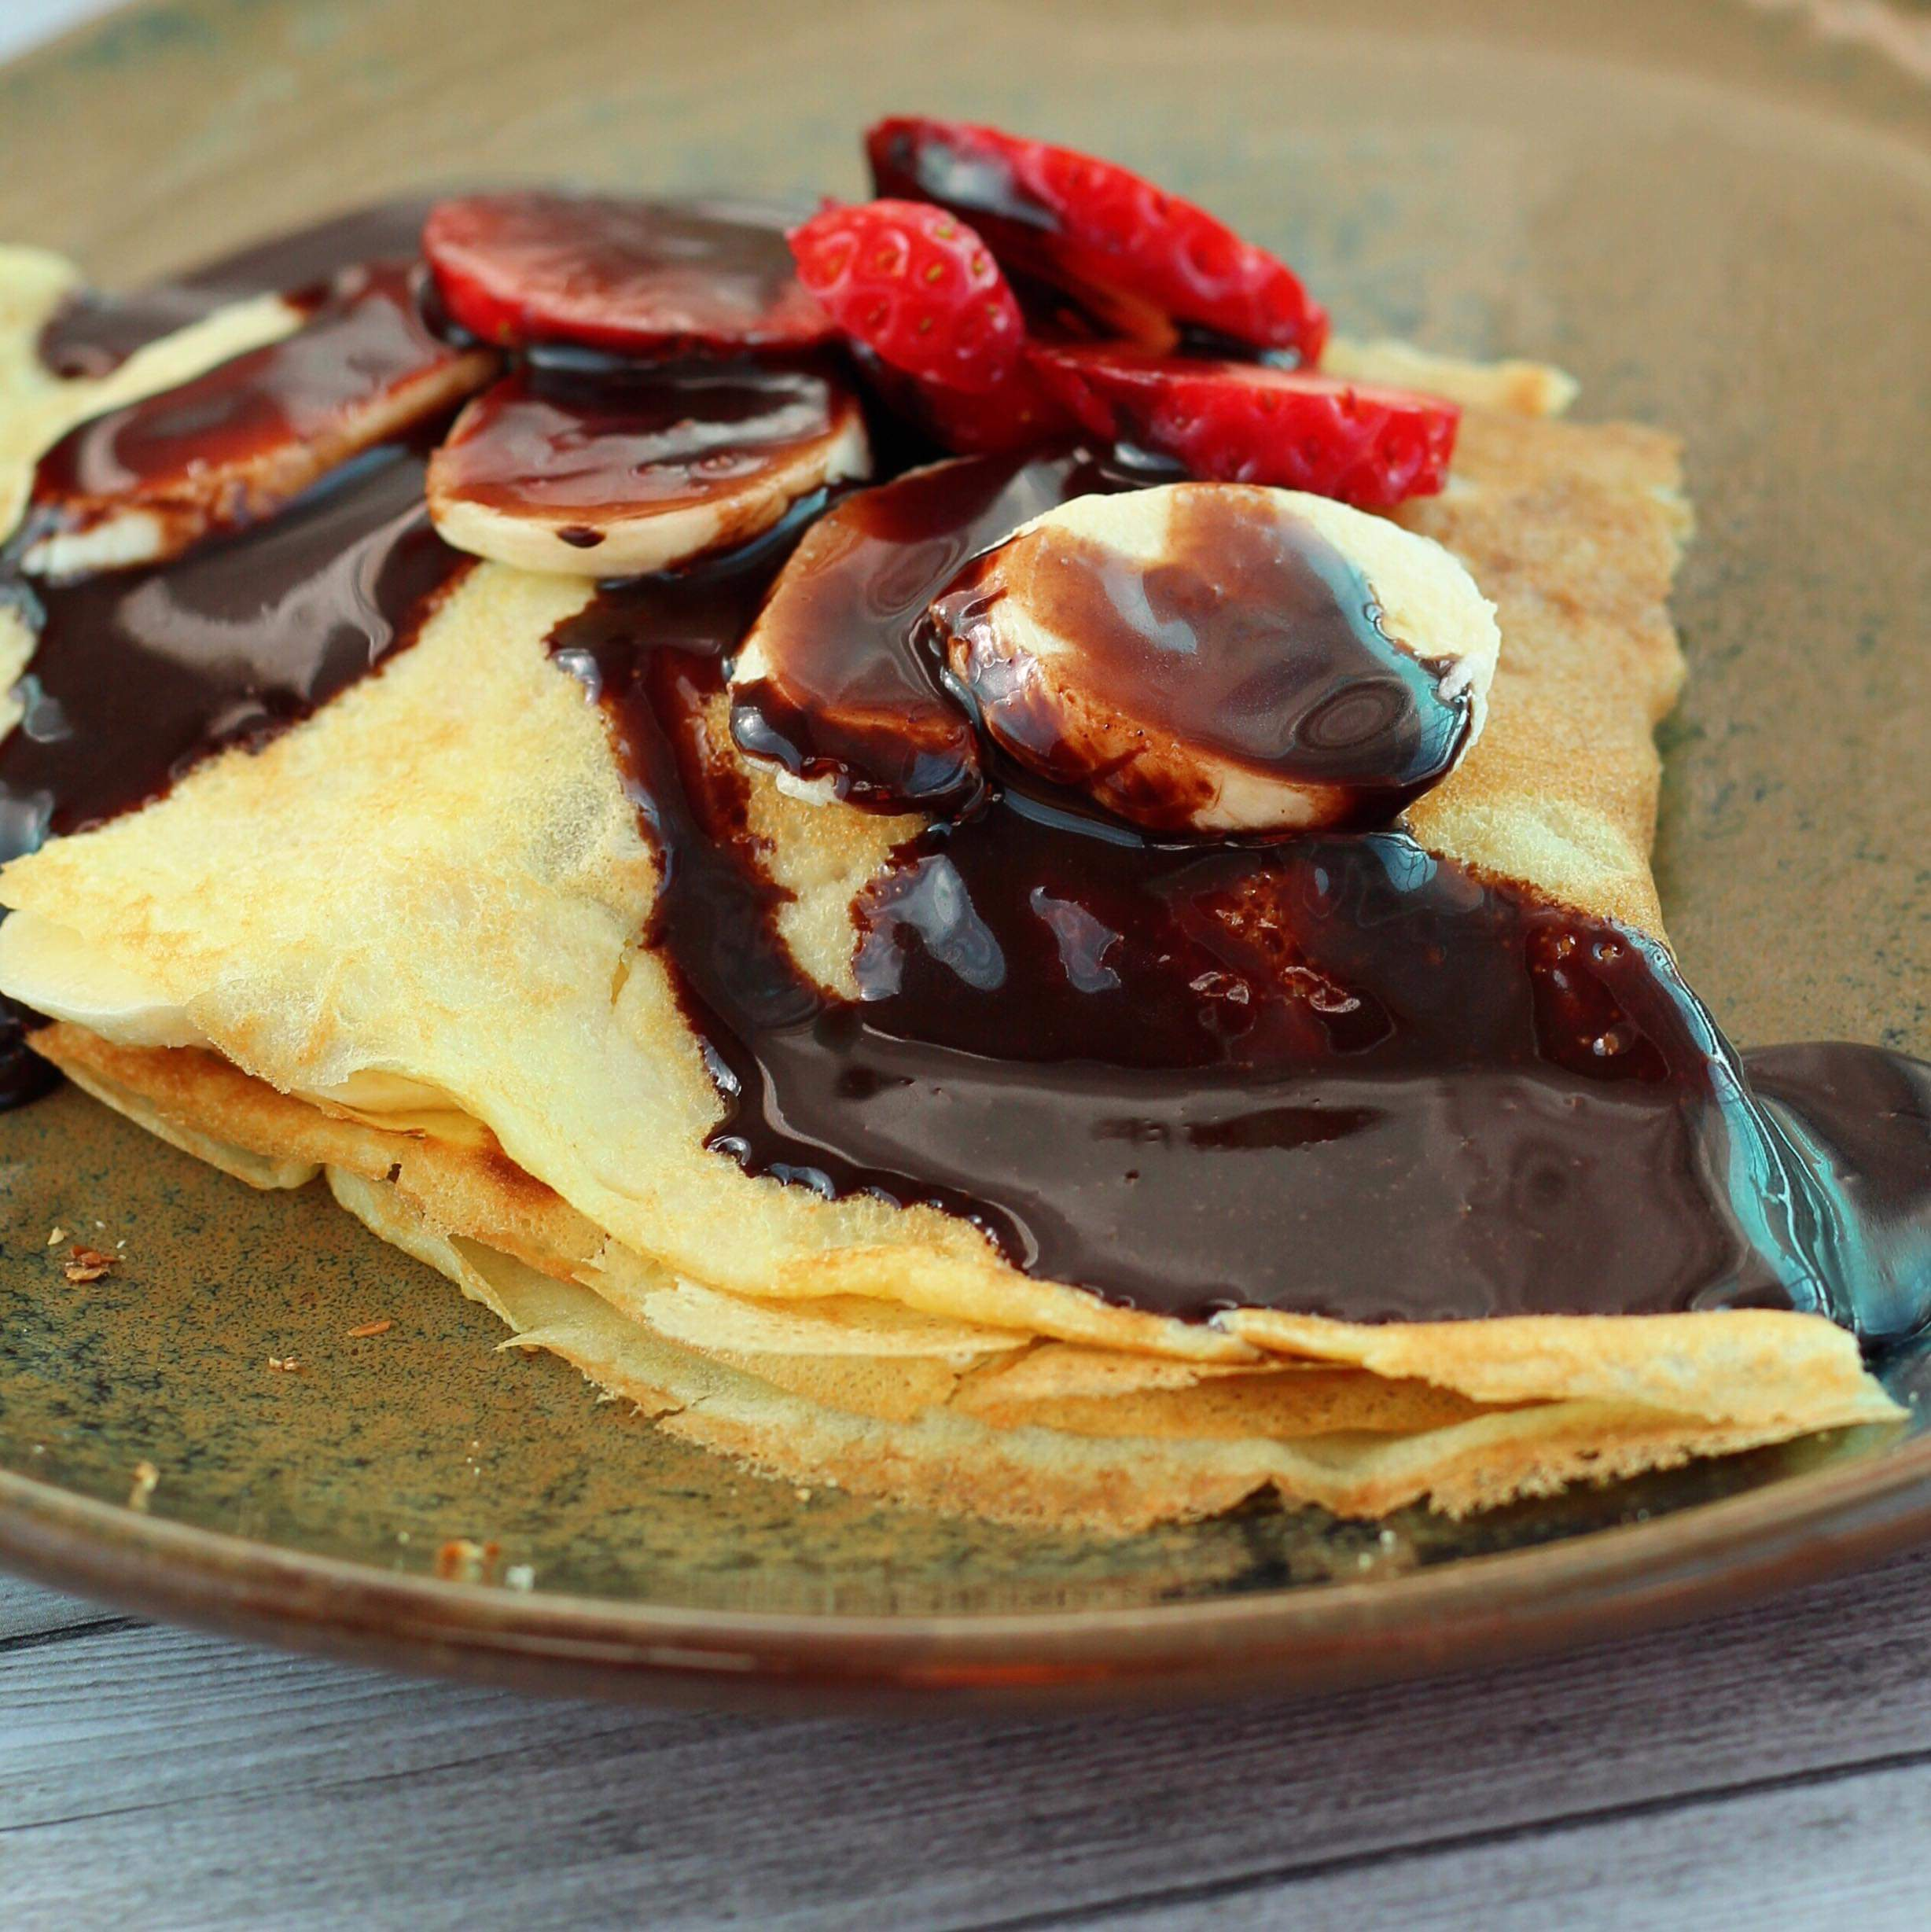 Dessert Crepes with Homemade Chocolate Sauce